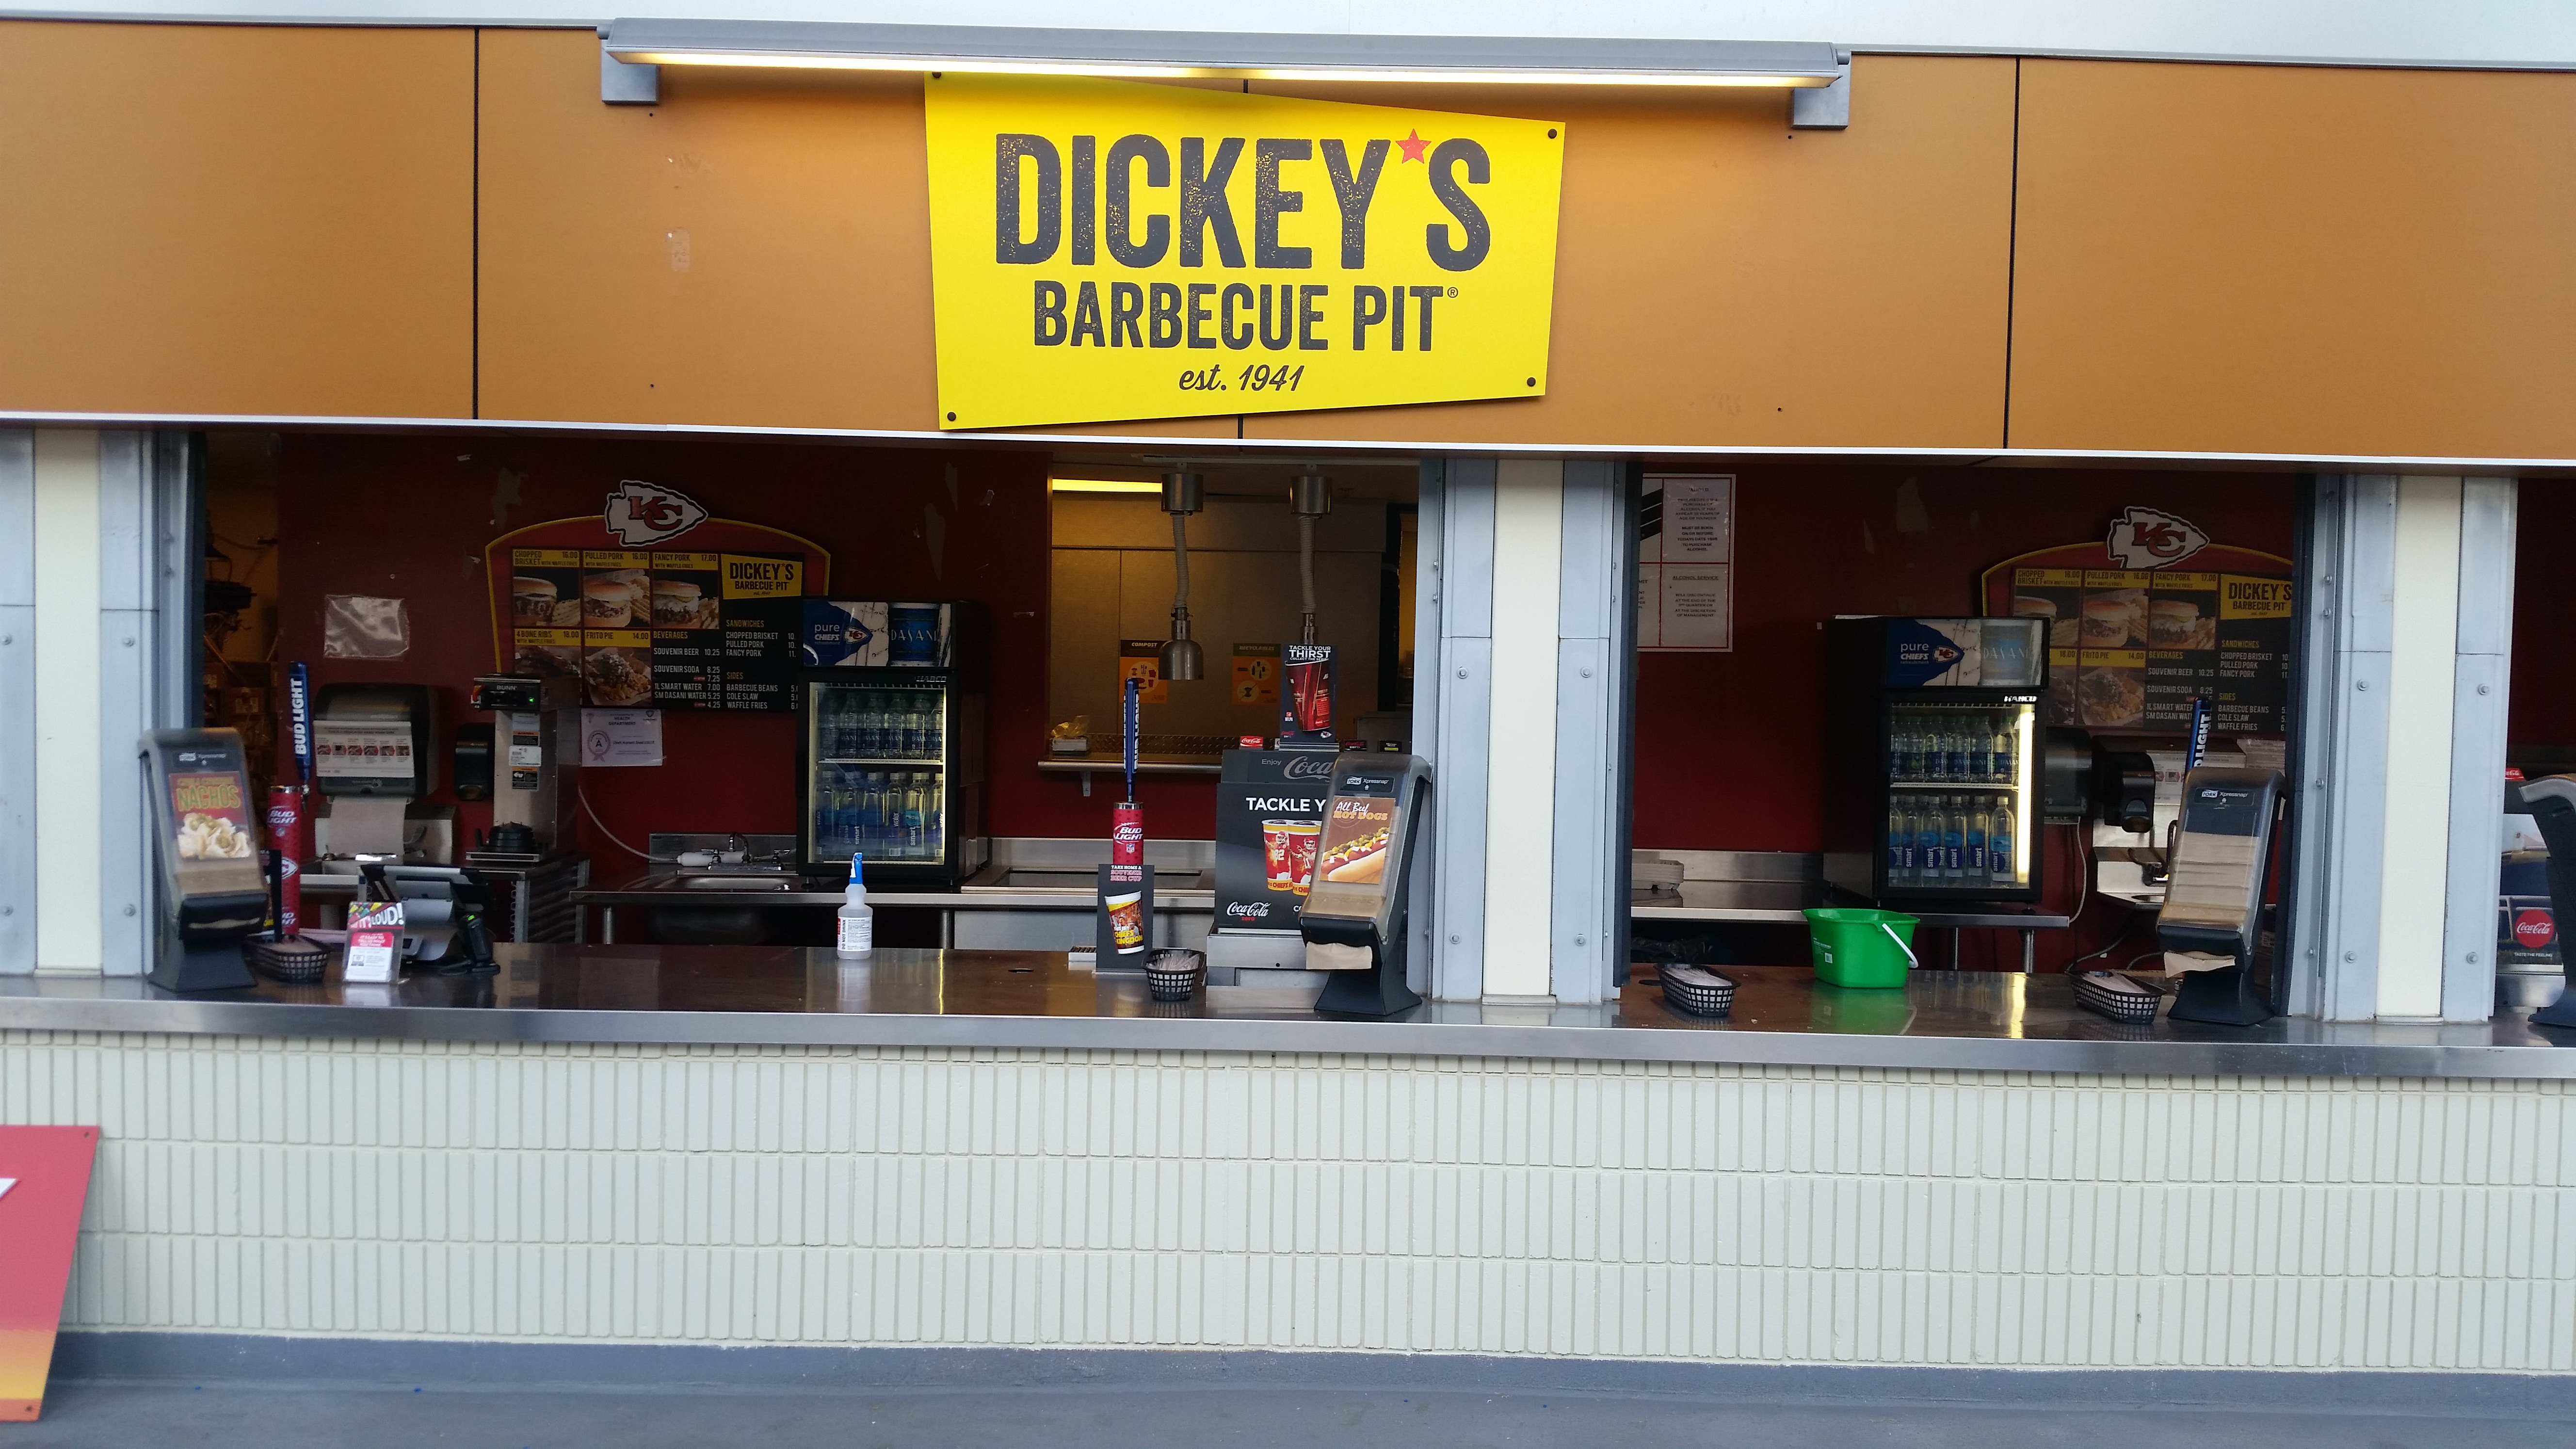 QSR: Dickey's Barbecue Pit Open at KC's Arrowhead Stadium